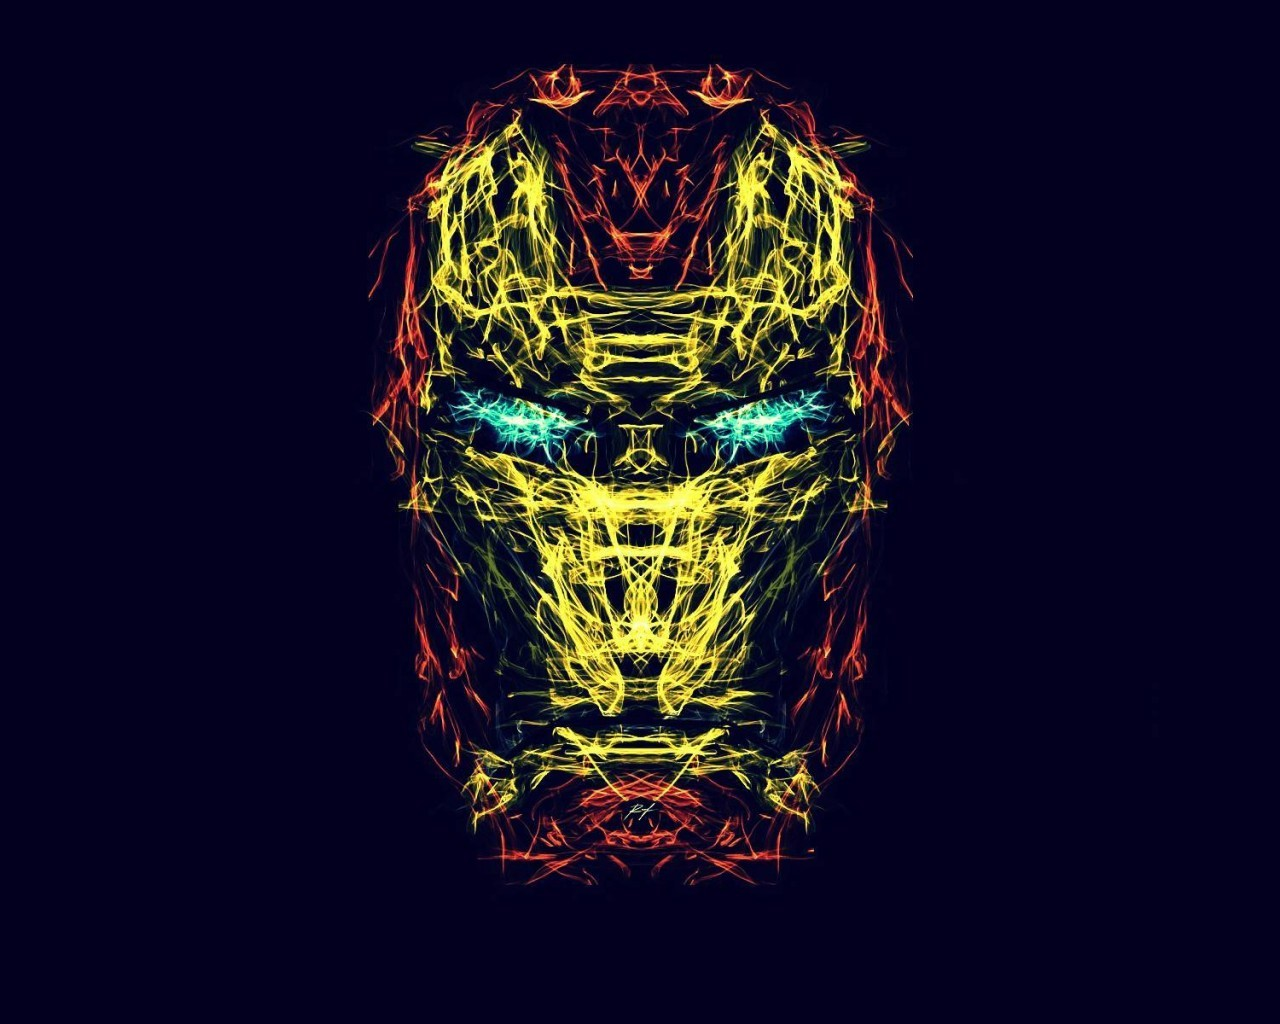 19237 download wallpaper Background, Pictures, Iron Man screensavers and pictures for free